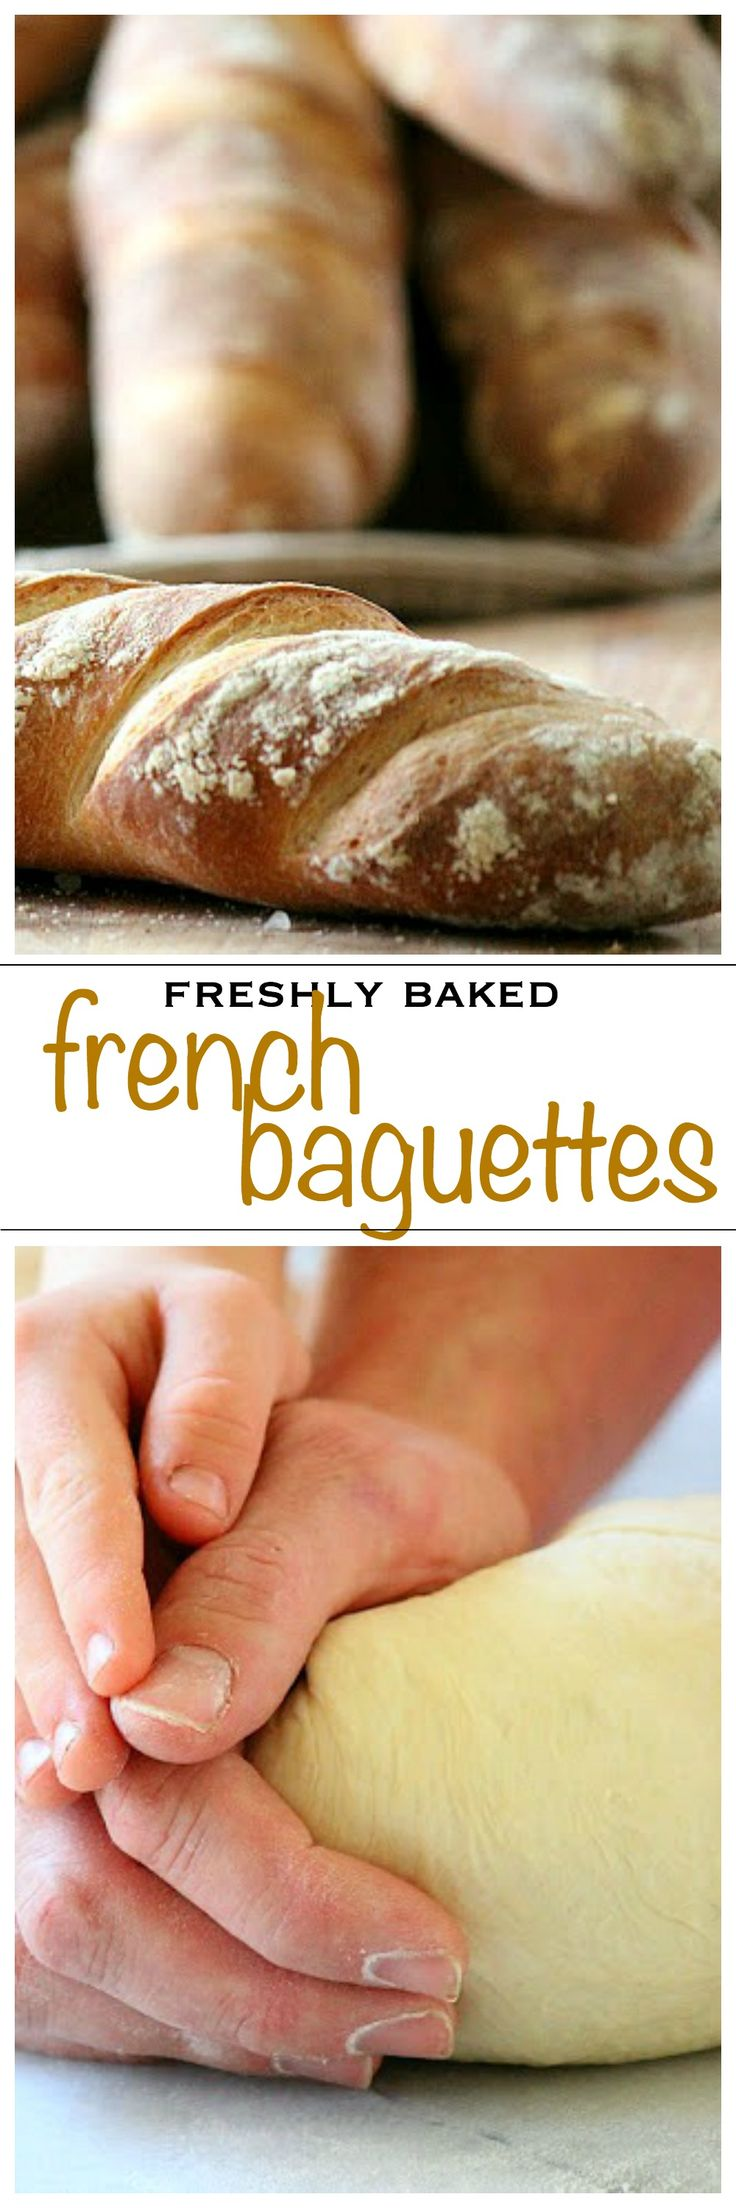 Homemade french baguettes, chewy and crusty just like a real bakery | Foodness Gracious